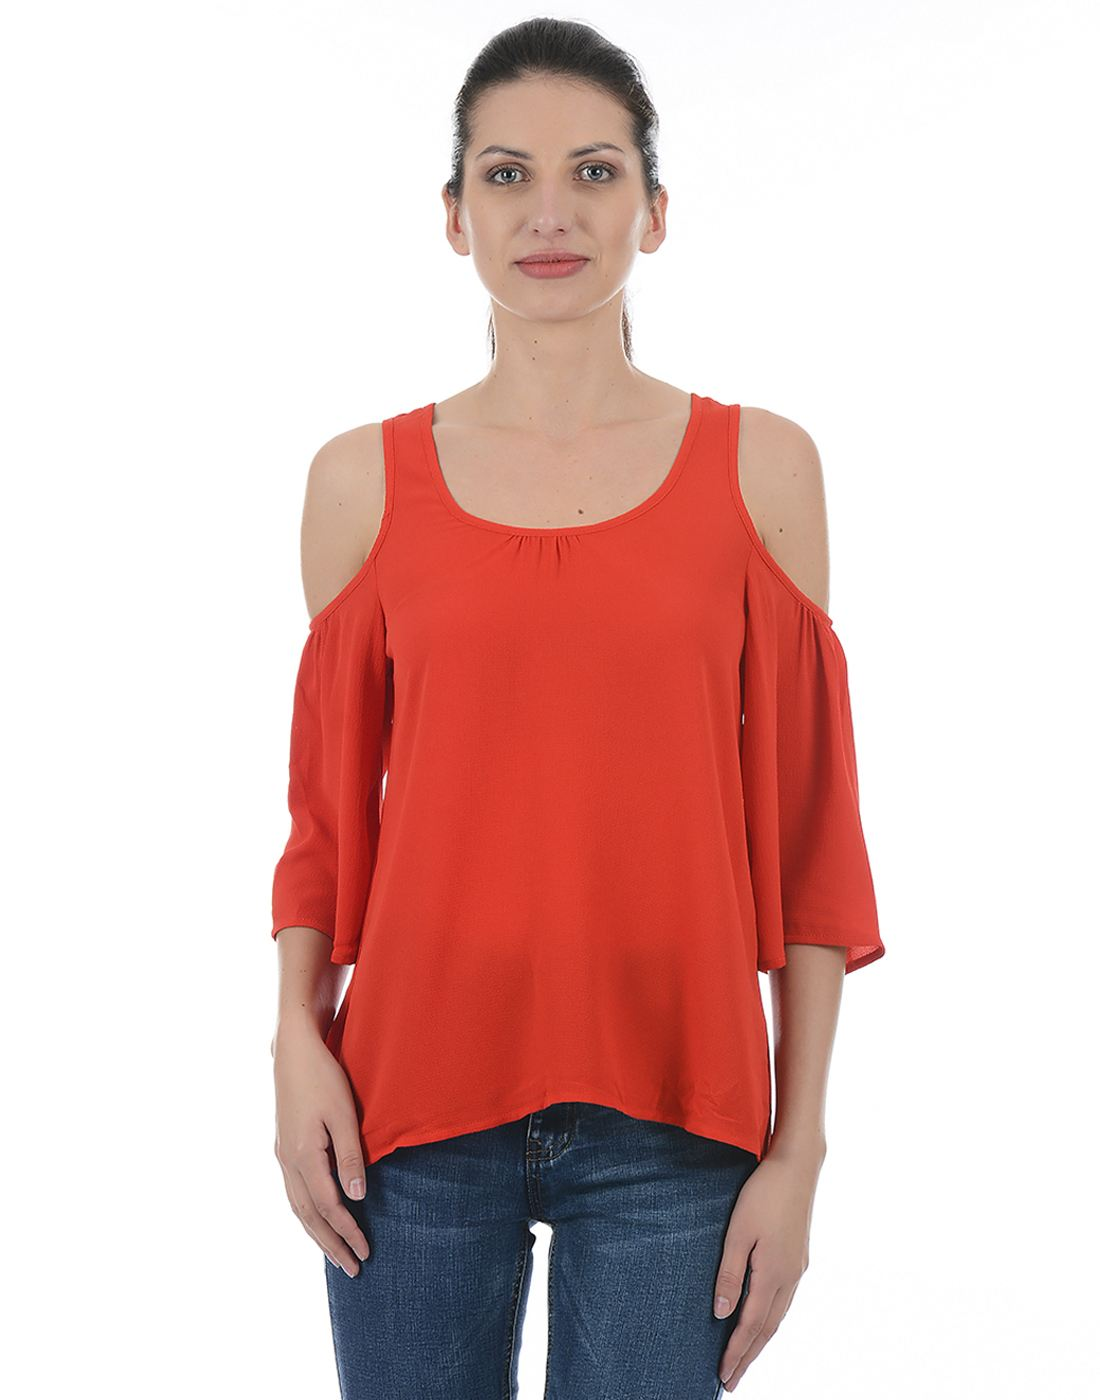 Only Women Casual Red Top